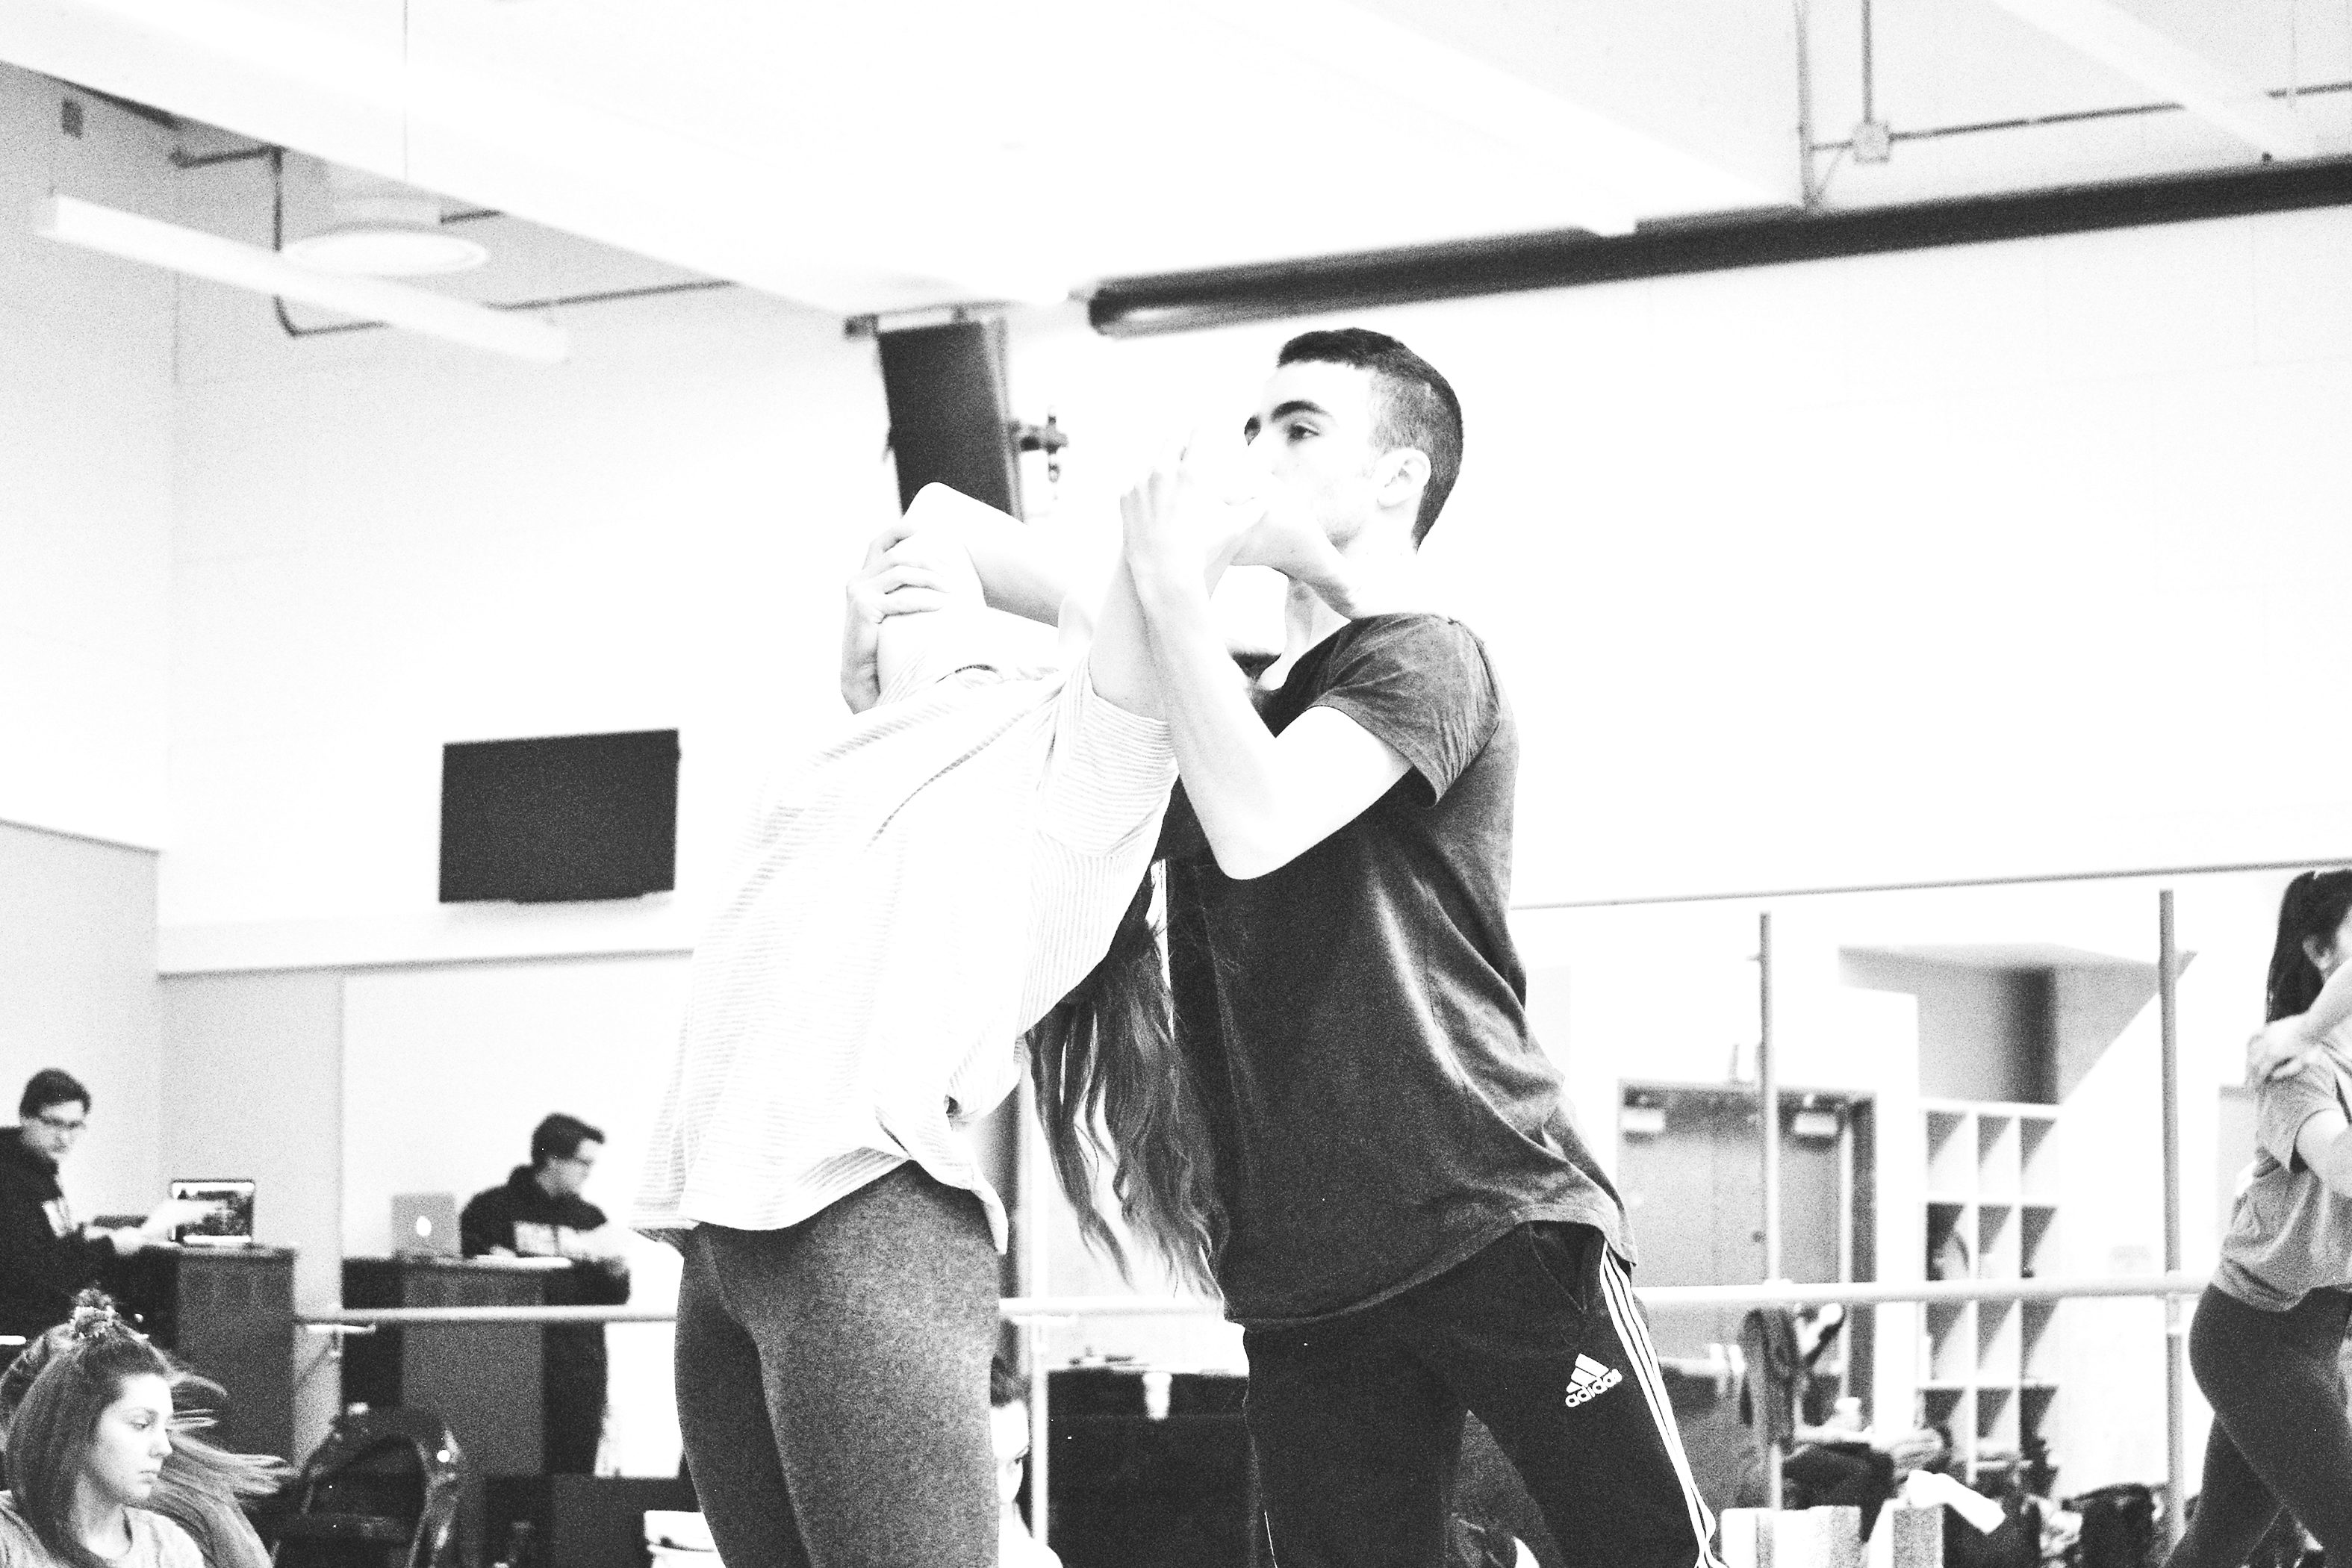 The way that Ryerson Dances breaks down in that the third- and fourth-year dancers are involved in the shows and the first- and second-years can be involved as understudies. Fourth-year, Kristen Sullivan and second-year understudy, Christos Tsiantoulas rehearse together ahead of Ryerson Dances first show. (Courtesy Megan Stephens)